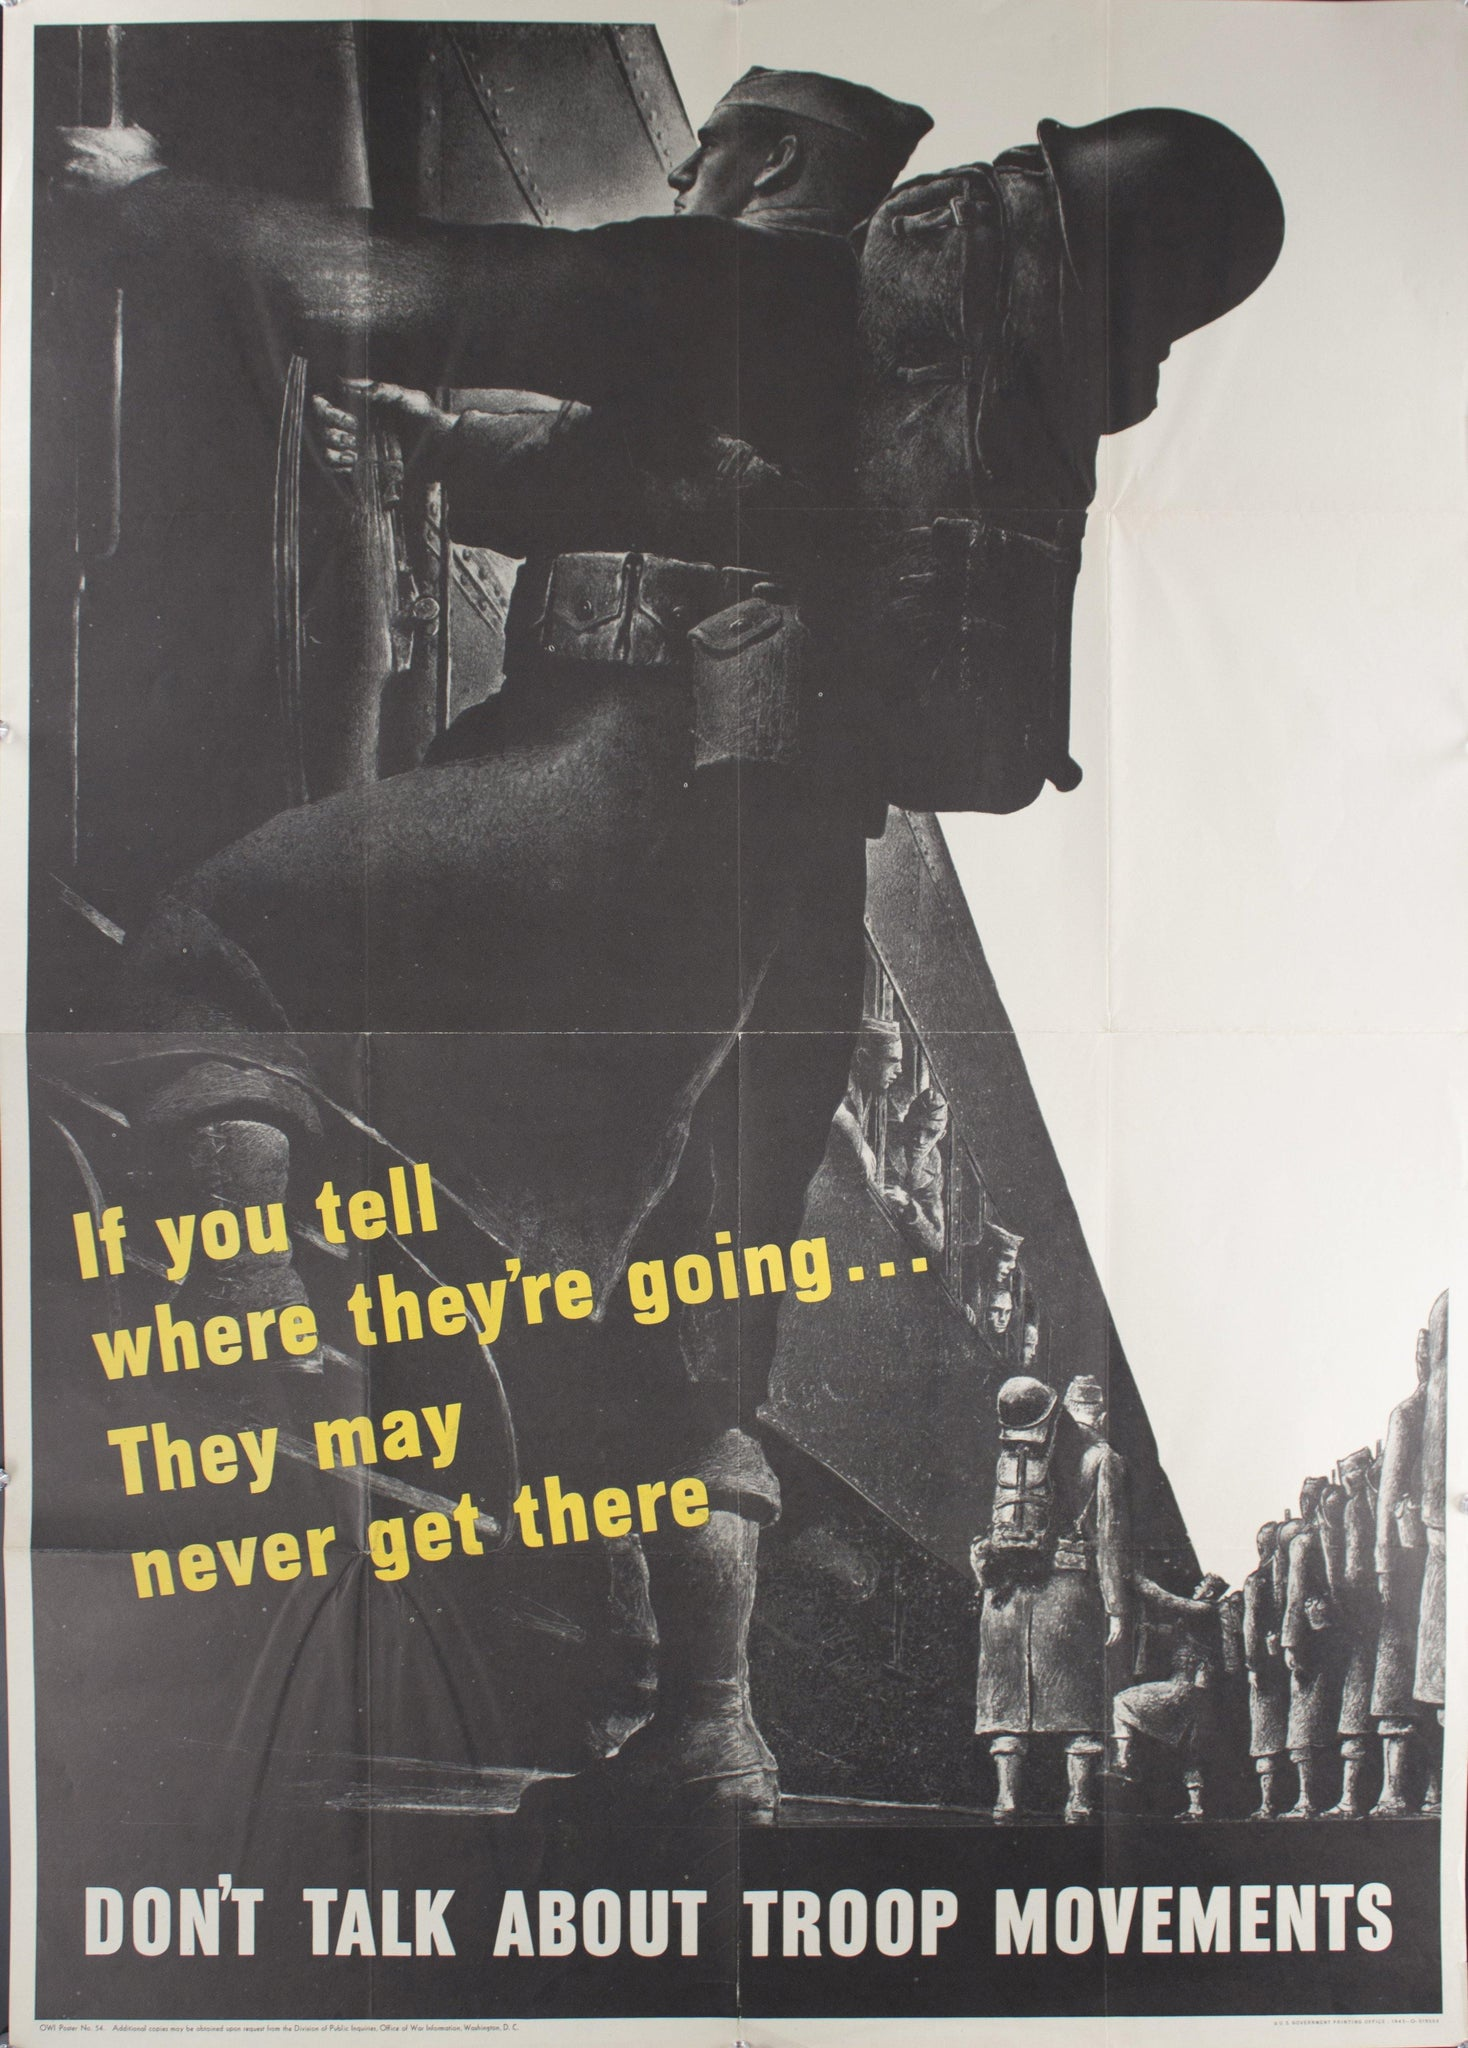 1943 If You Tell Where They're Going…They May Never Get There - Don't Talk About Troop Movements